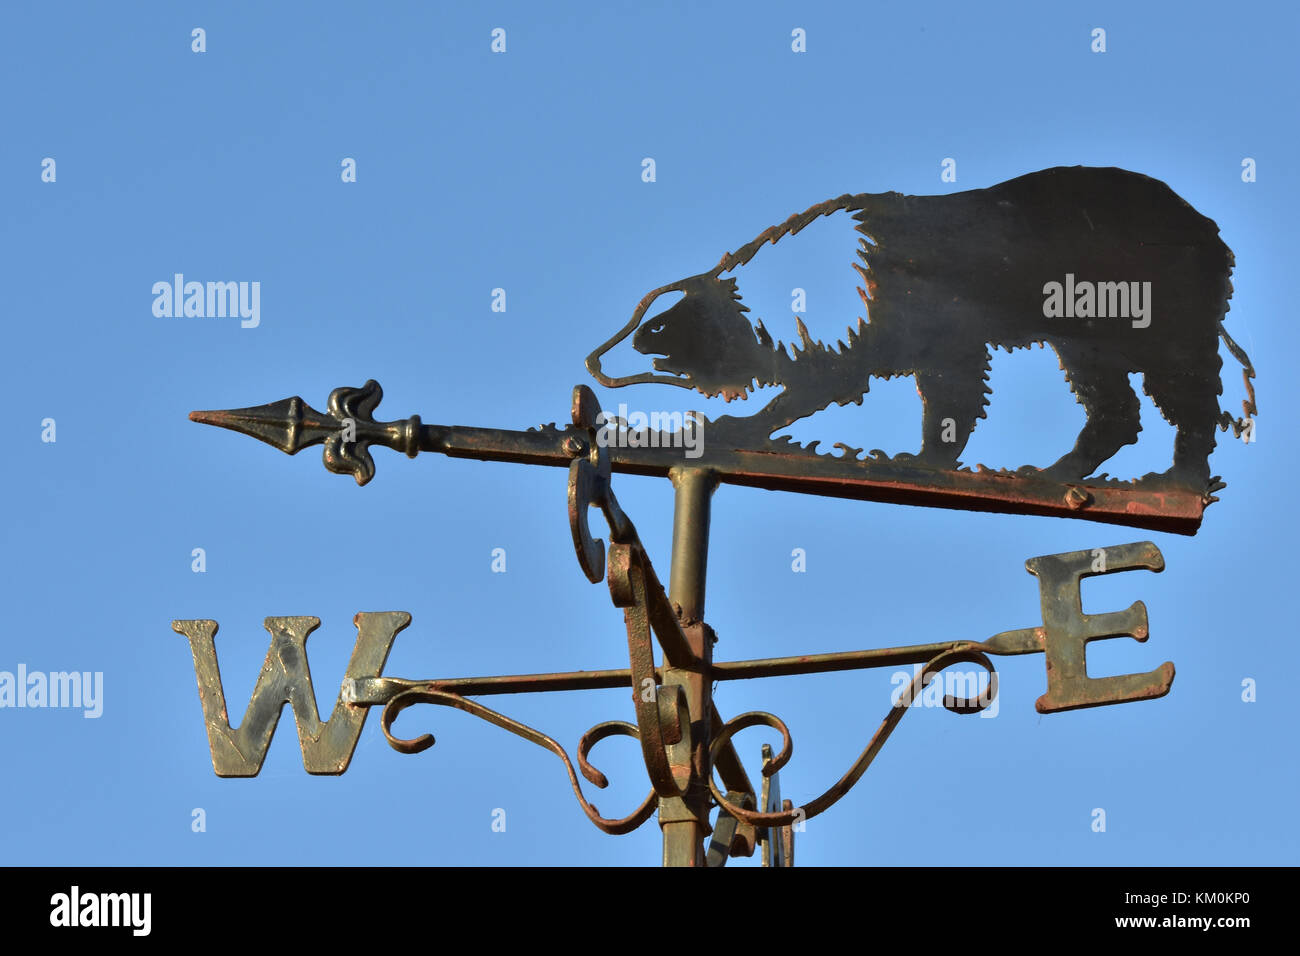 A border collie or sheep dog depicted on a weather vane for telling the direction of the prevailing weather or wind. - Stock Image